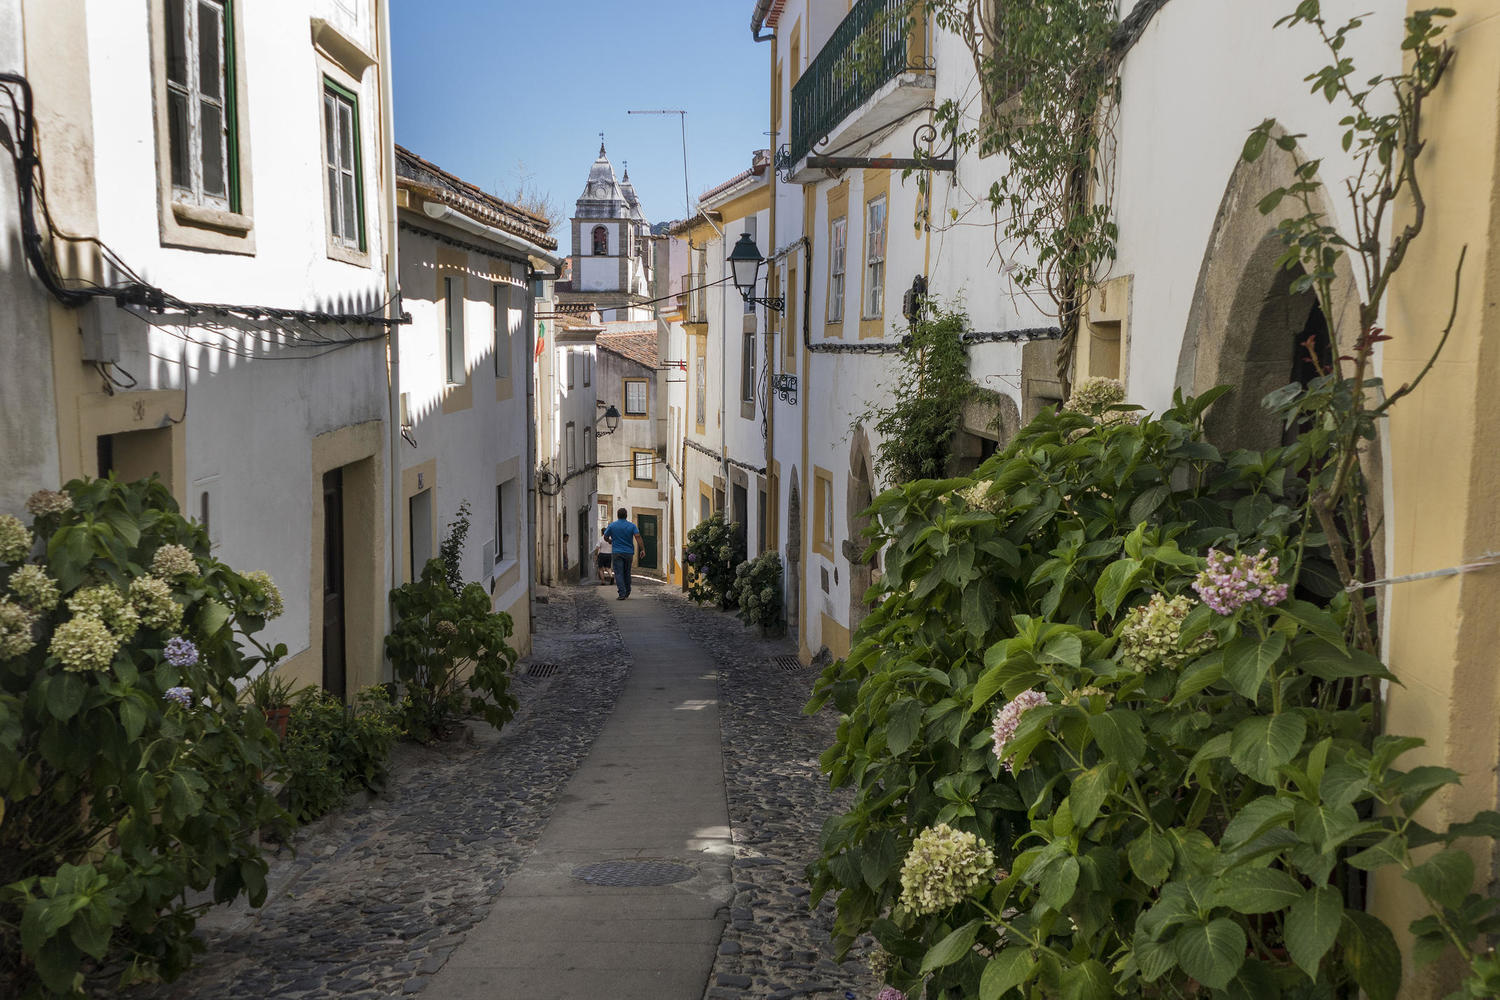 The streets of Castelo de Vide really aren't made for cars